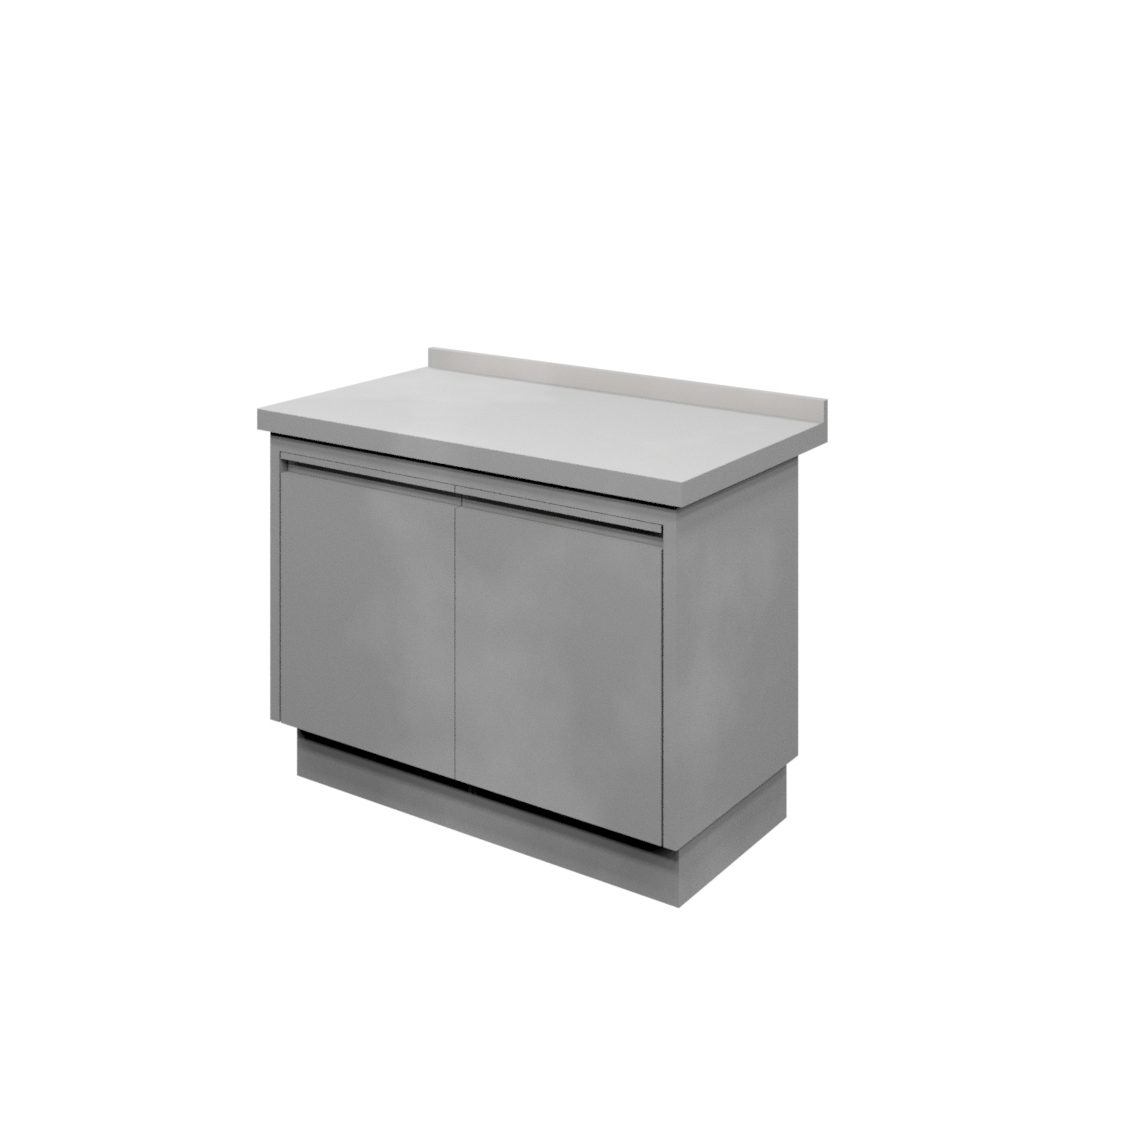 MCF_Ambient Cupboard_AC1200x650